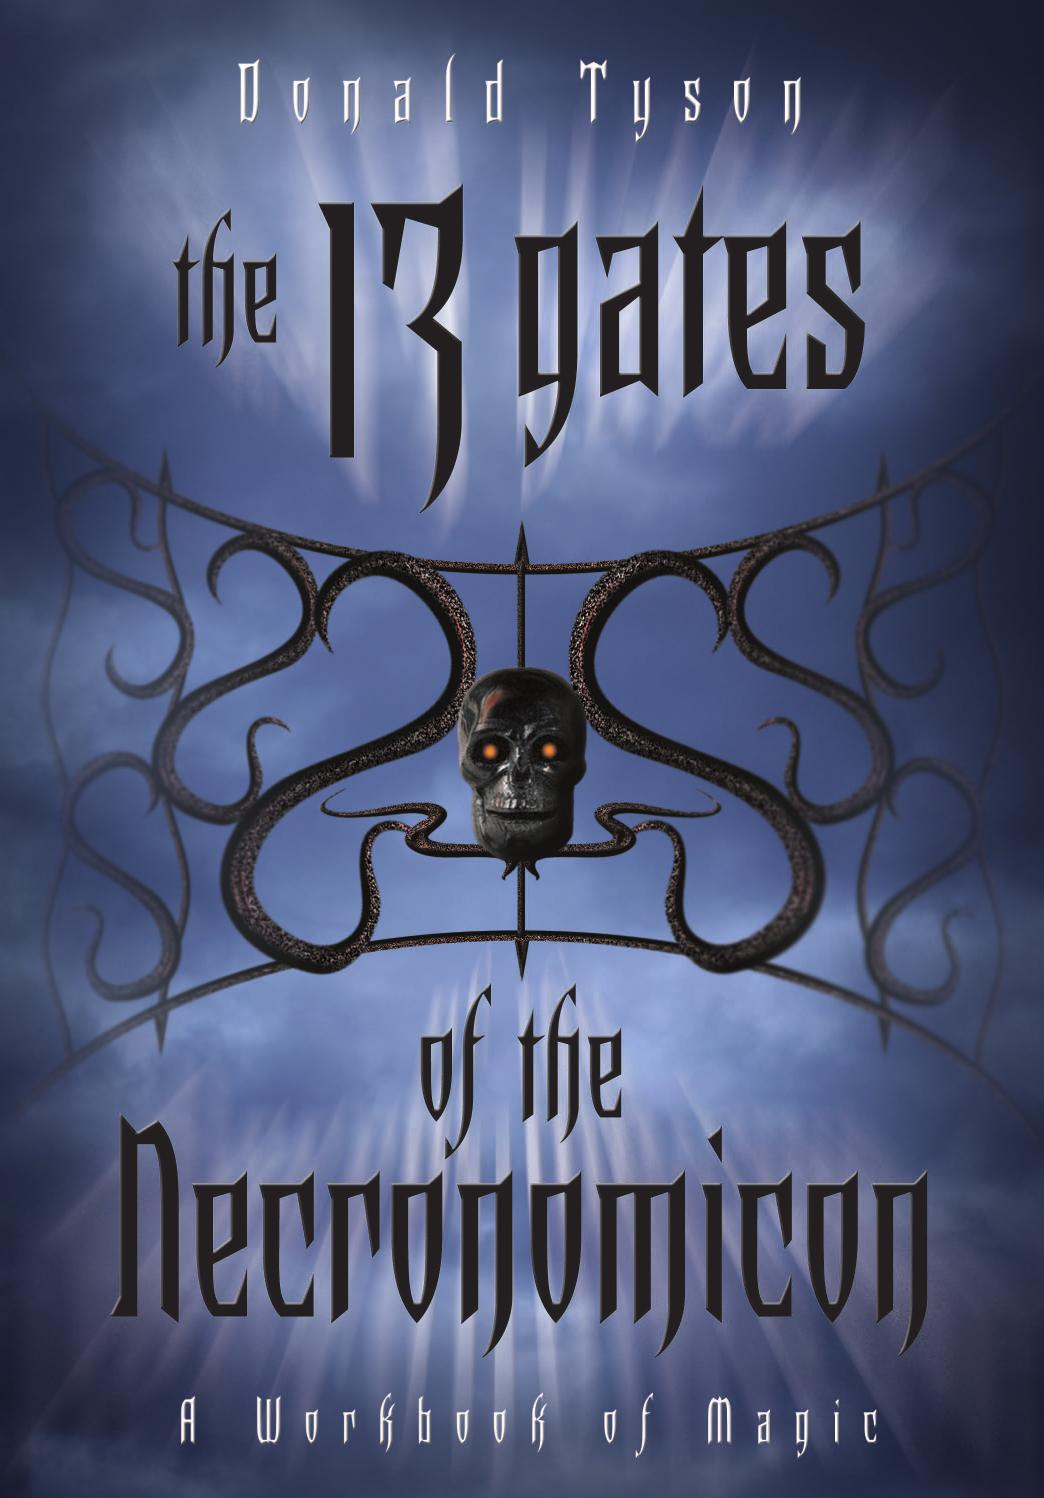 The 13 Gates of the Necronomicon by Donald Tyson by